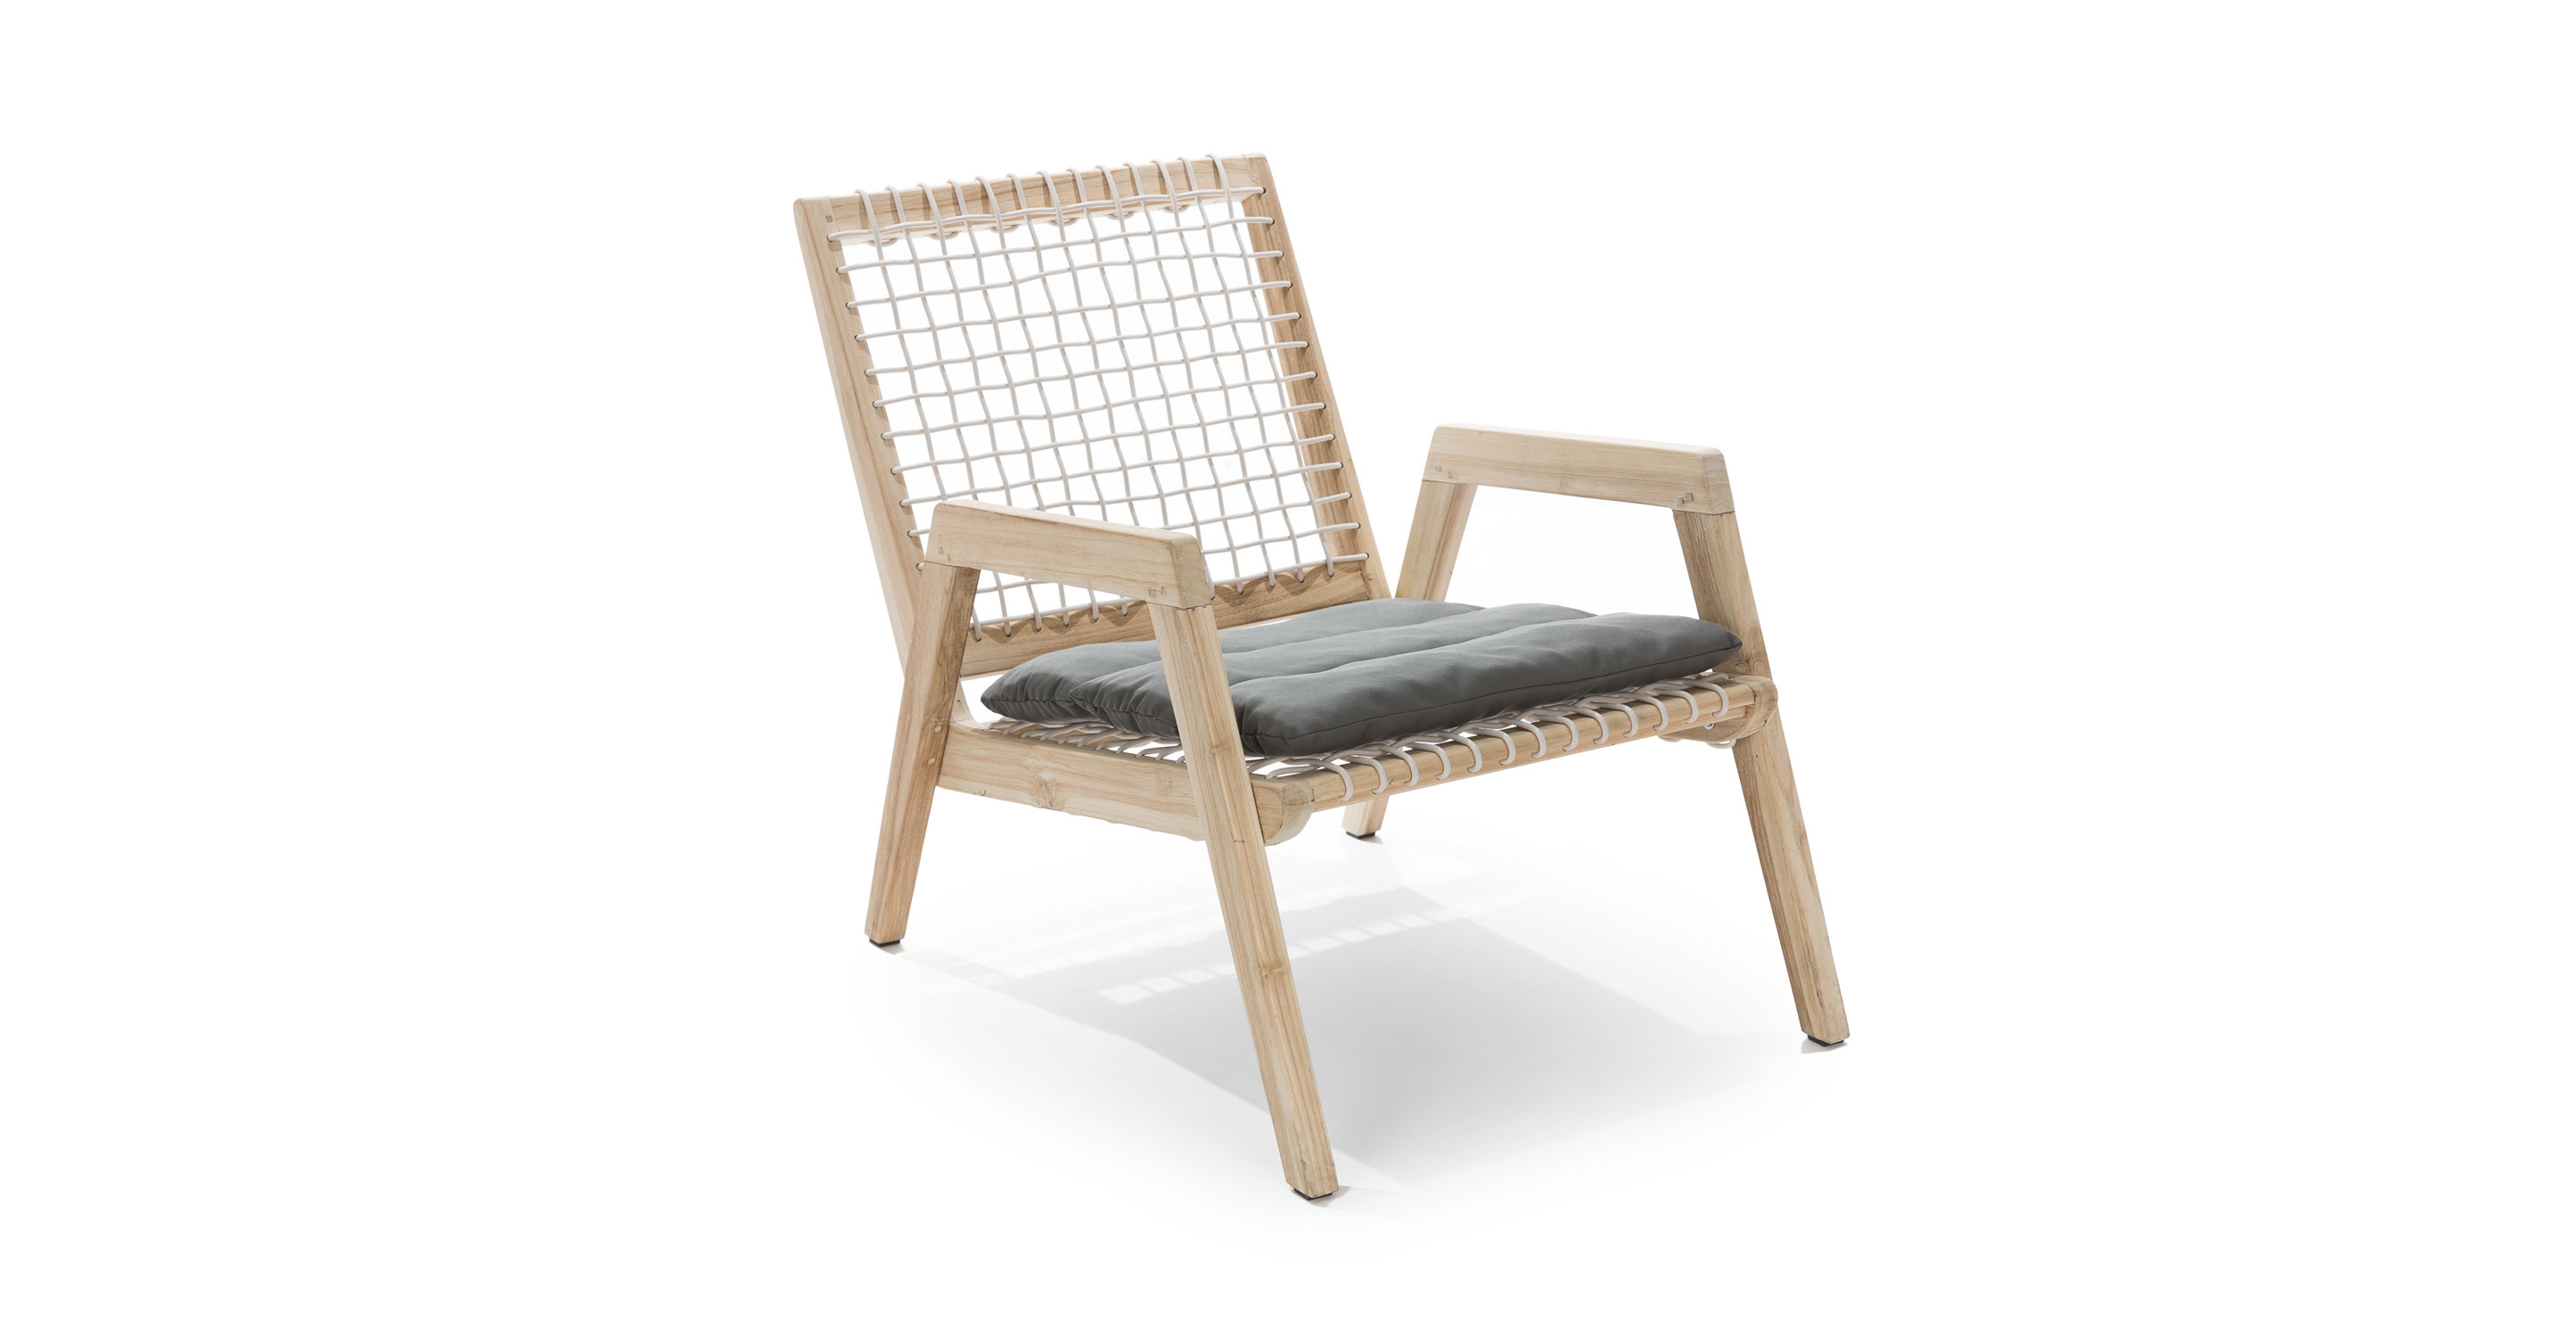 Lounge Chair Teak Outdoor Lounge Chair Article Teaka Wooden Outdoor Furniture